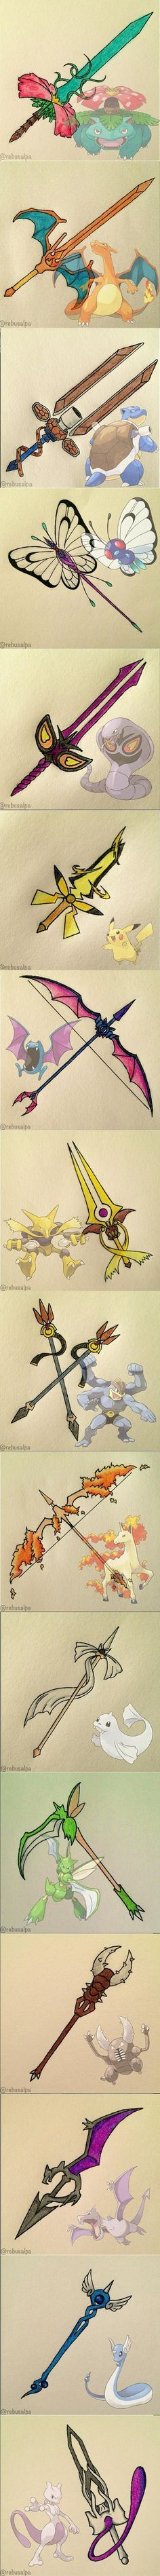 Pokemon Weapons.